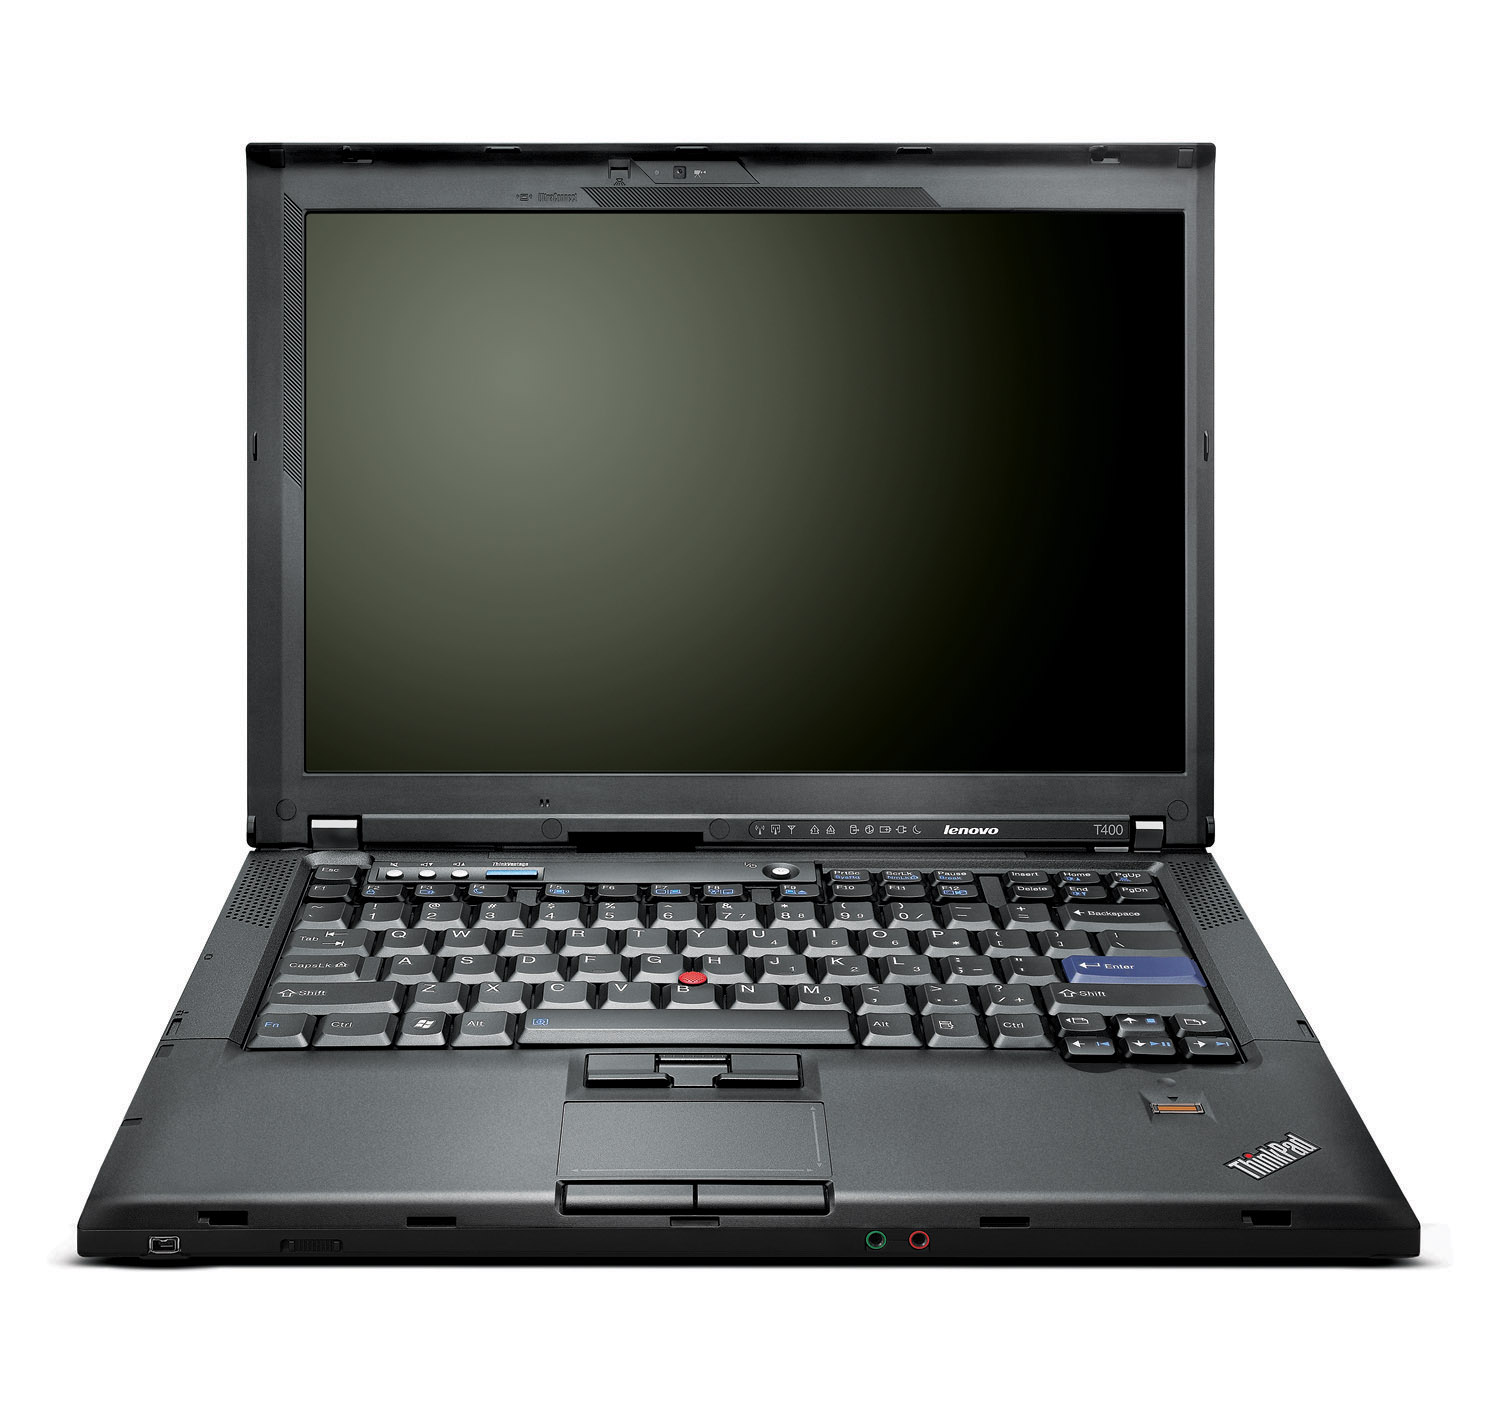 Thinkpad T400 / P8600 2,4GHz / 4GB / 160GB HDD / WIN 10